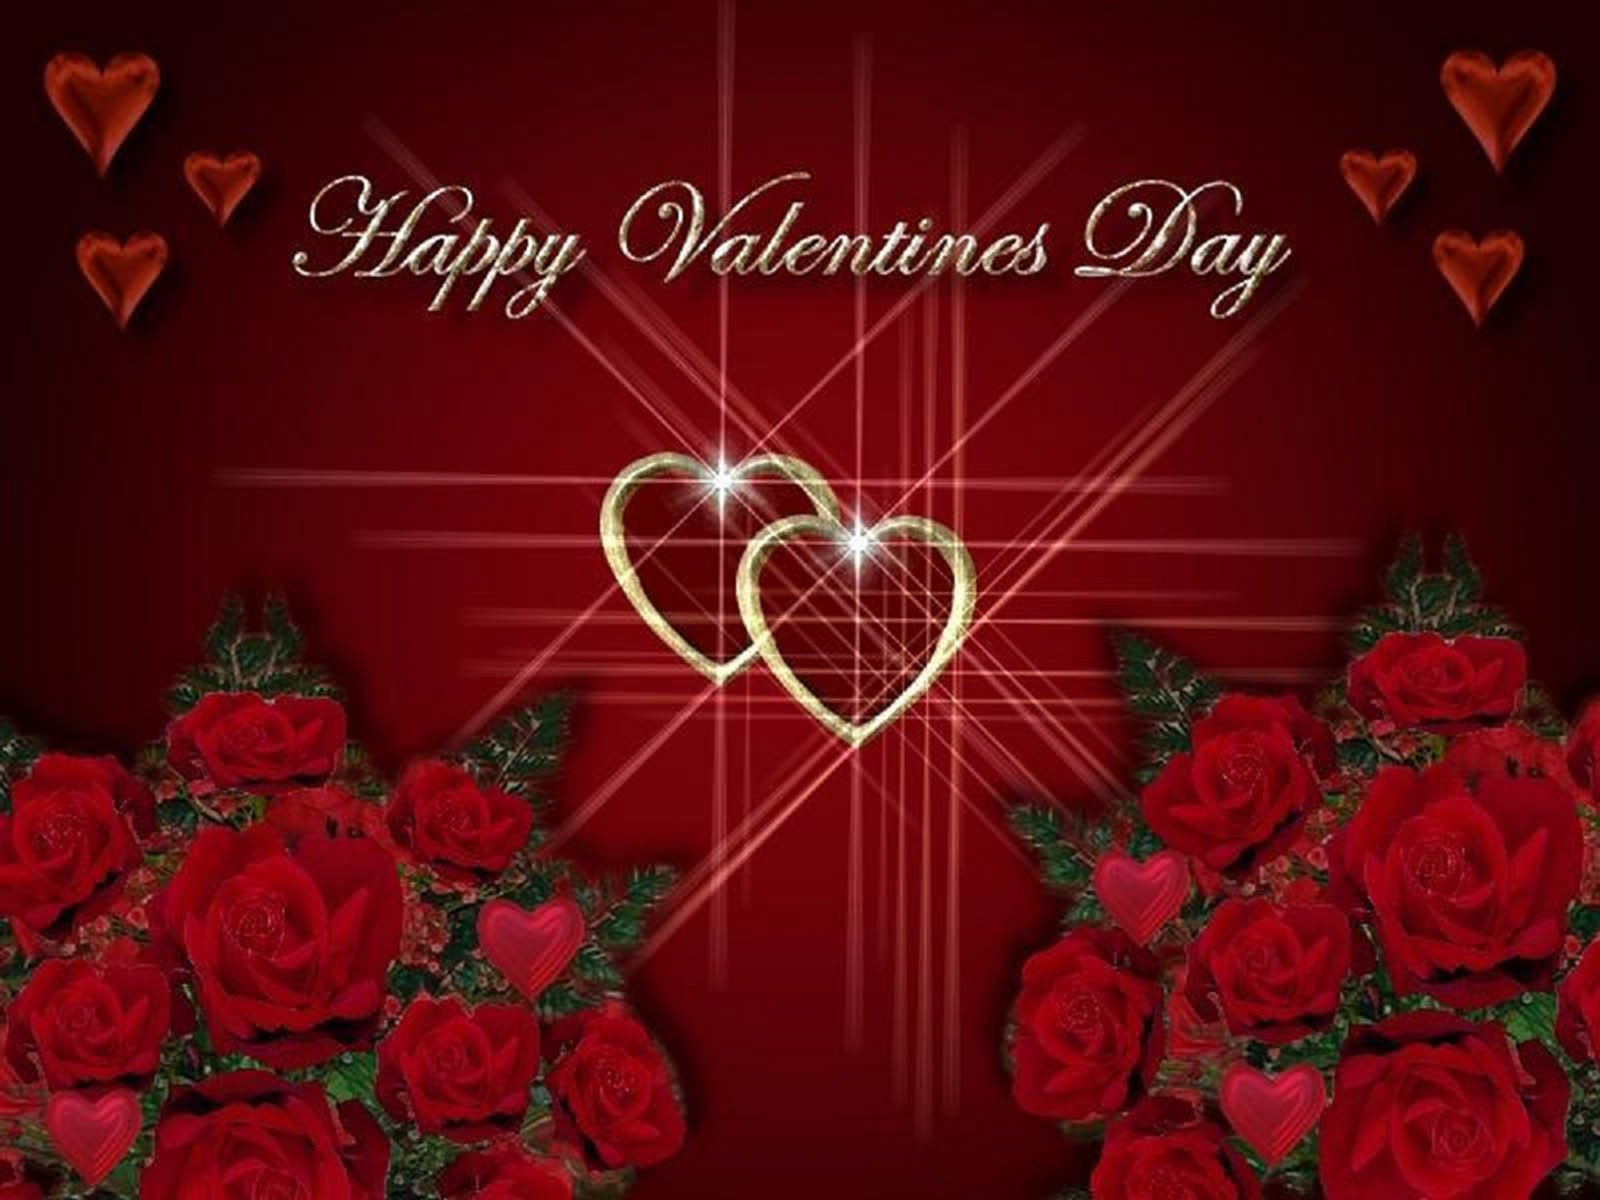 Valentine Day Wallpaper Free Wallpapers Valentines Day Desktop Wallpapers 2013